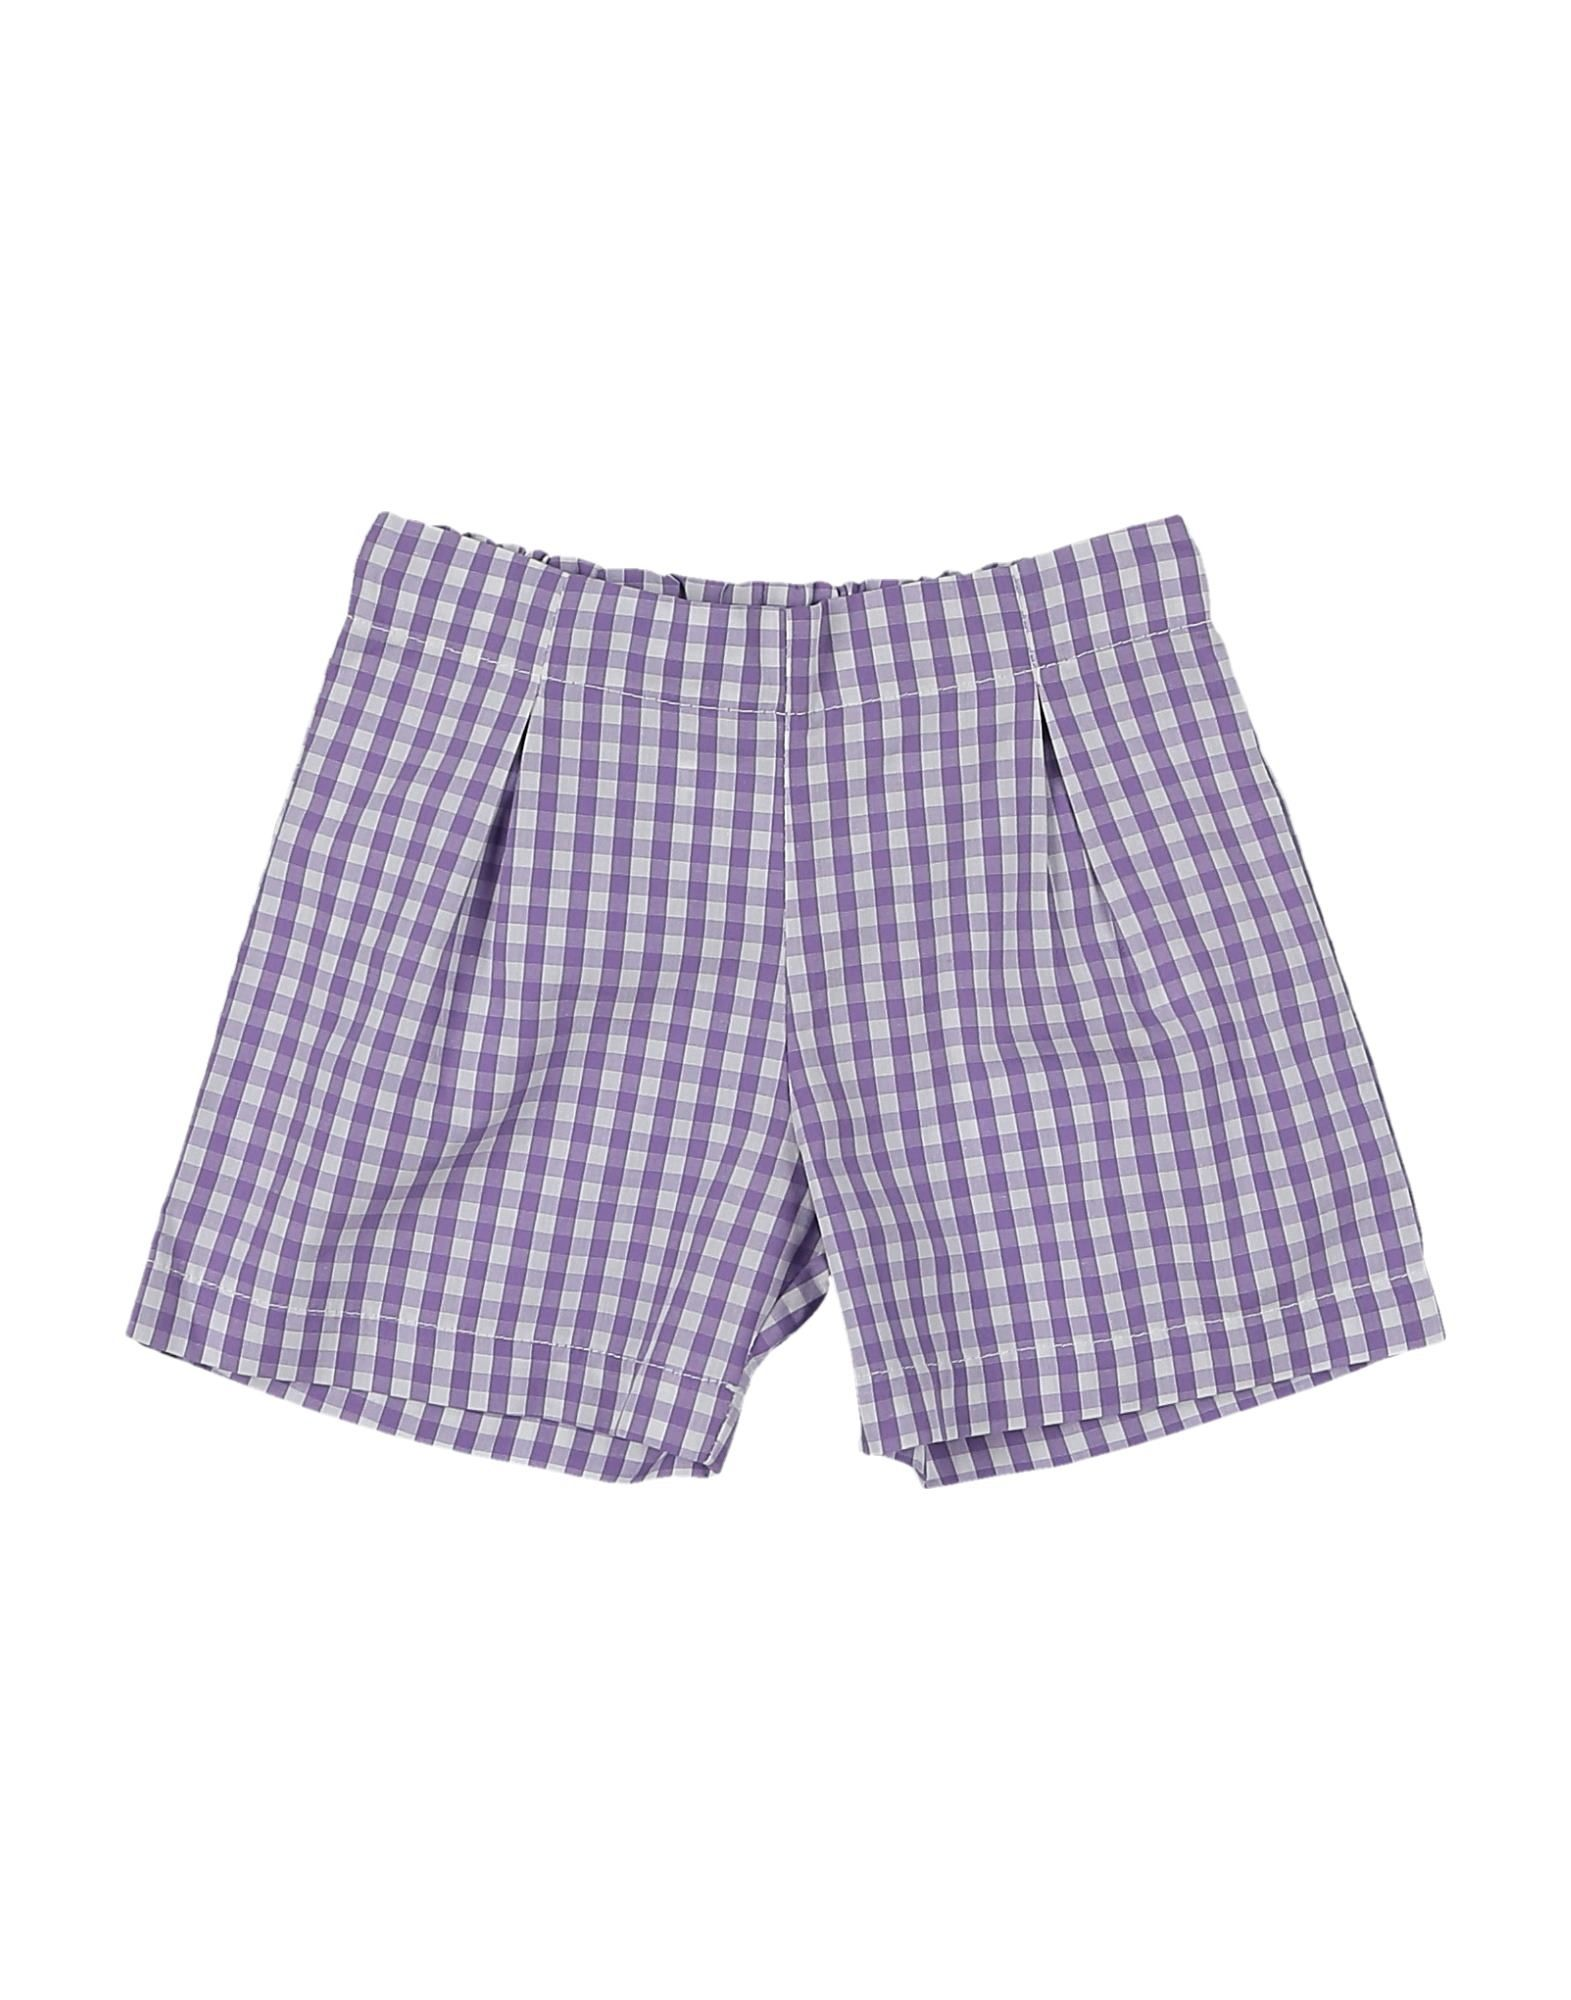 J.o. Milano Kids' Shorts In Purple